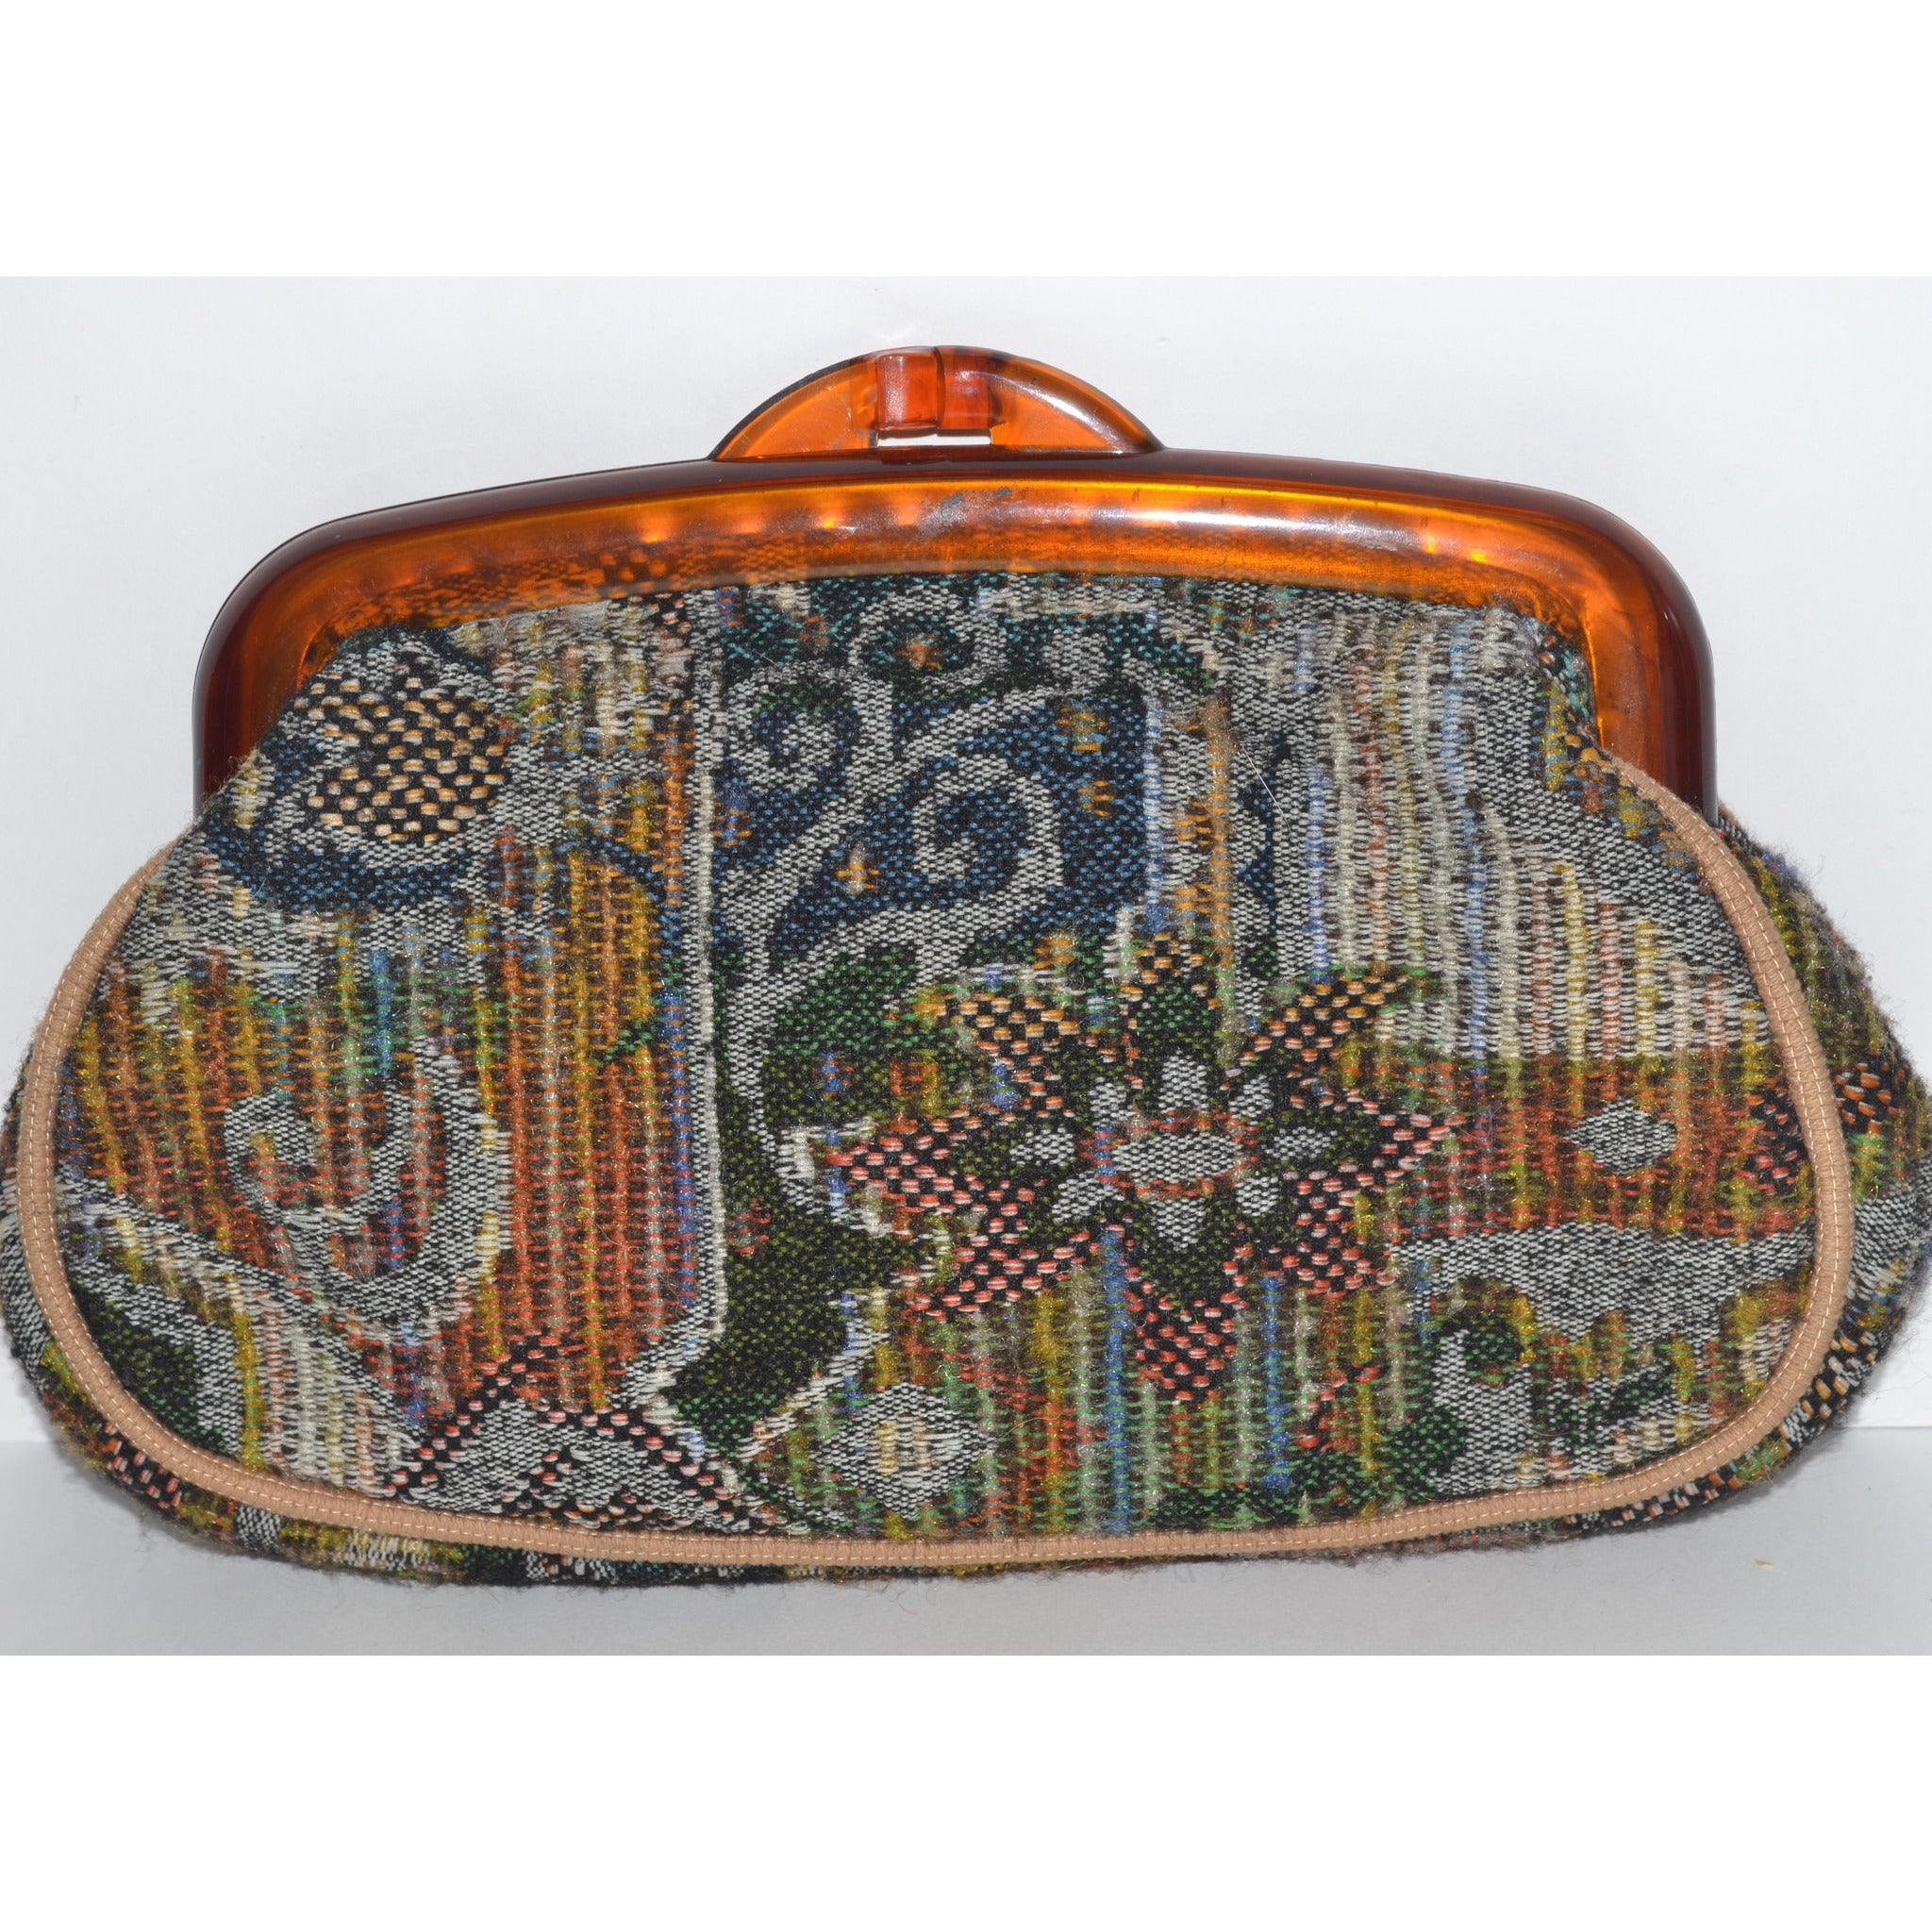 Vintage Carpetbag Plastic Framed Clutch Purse By Tibor